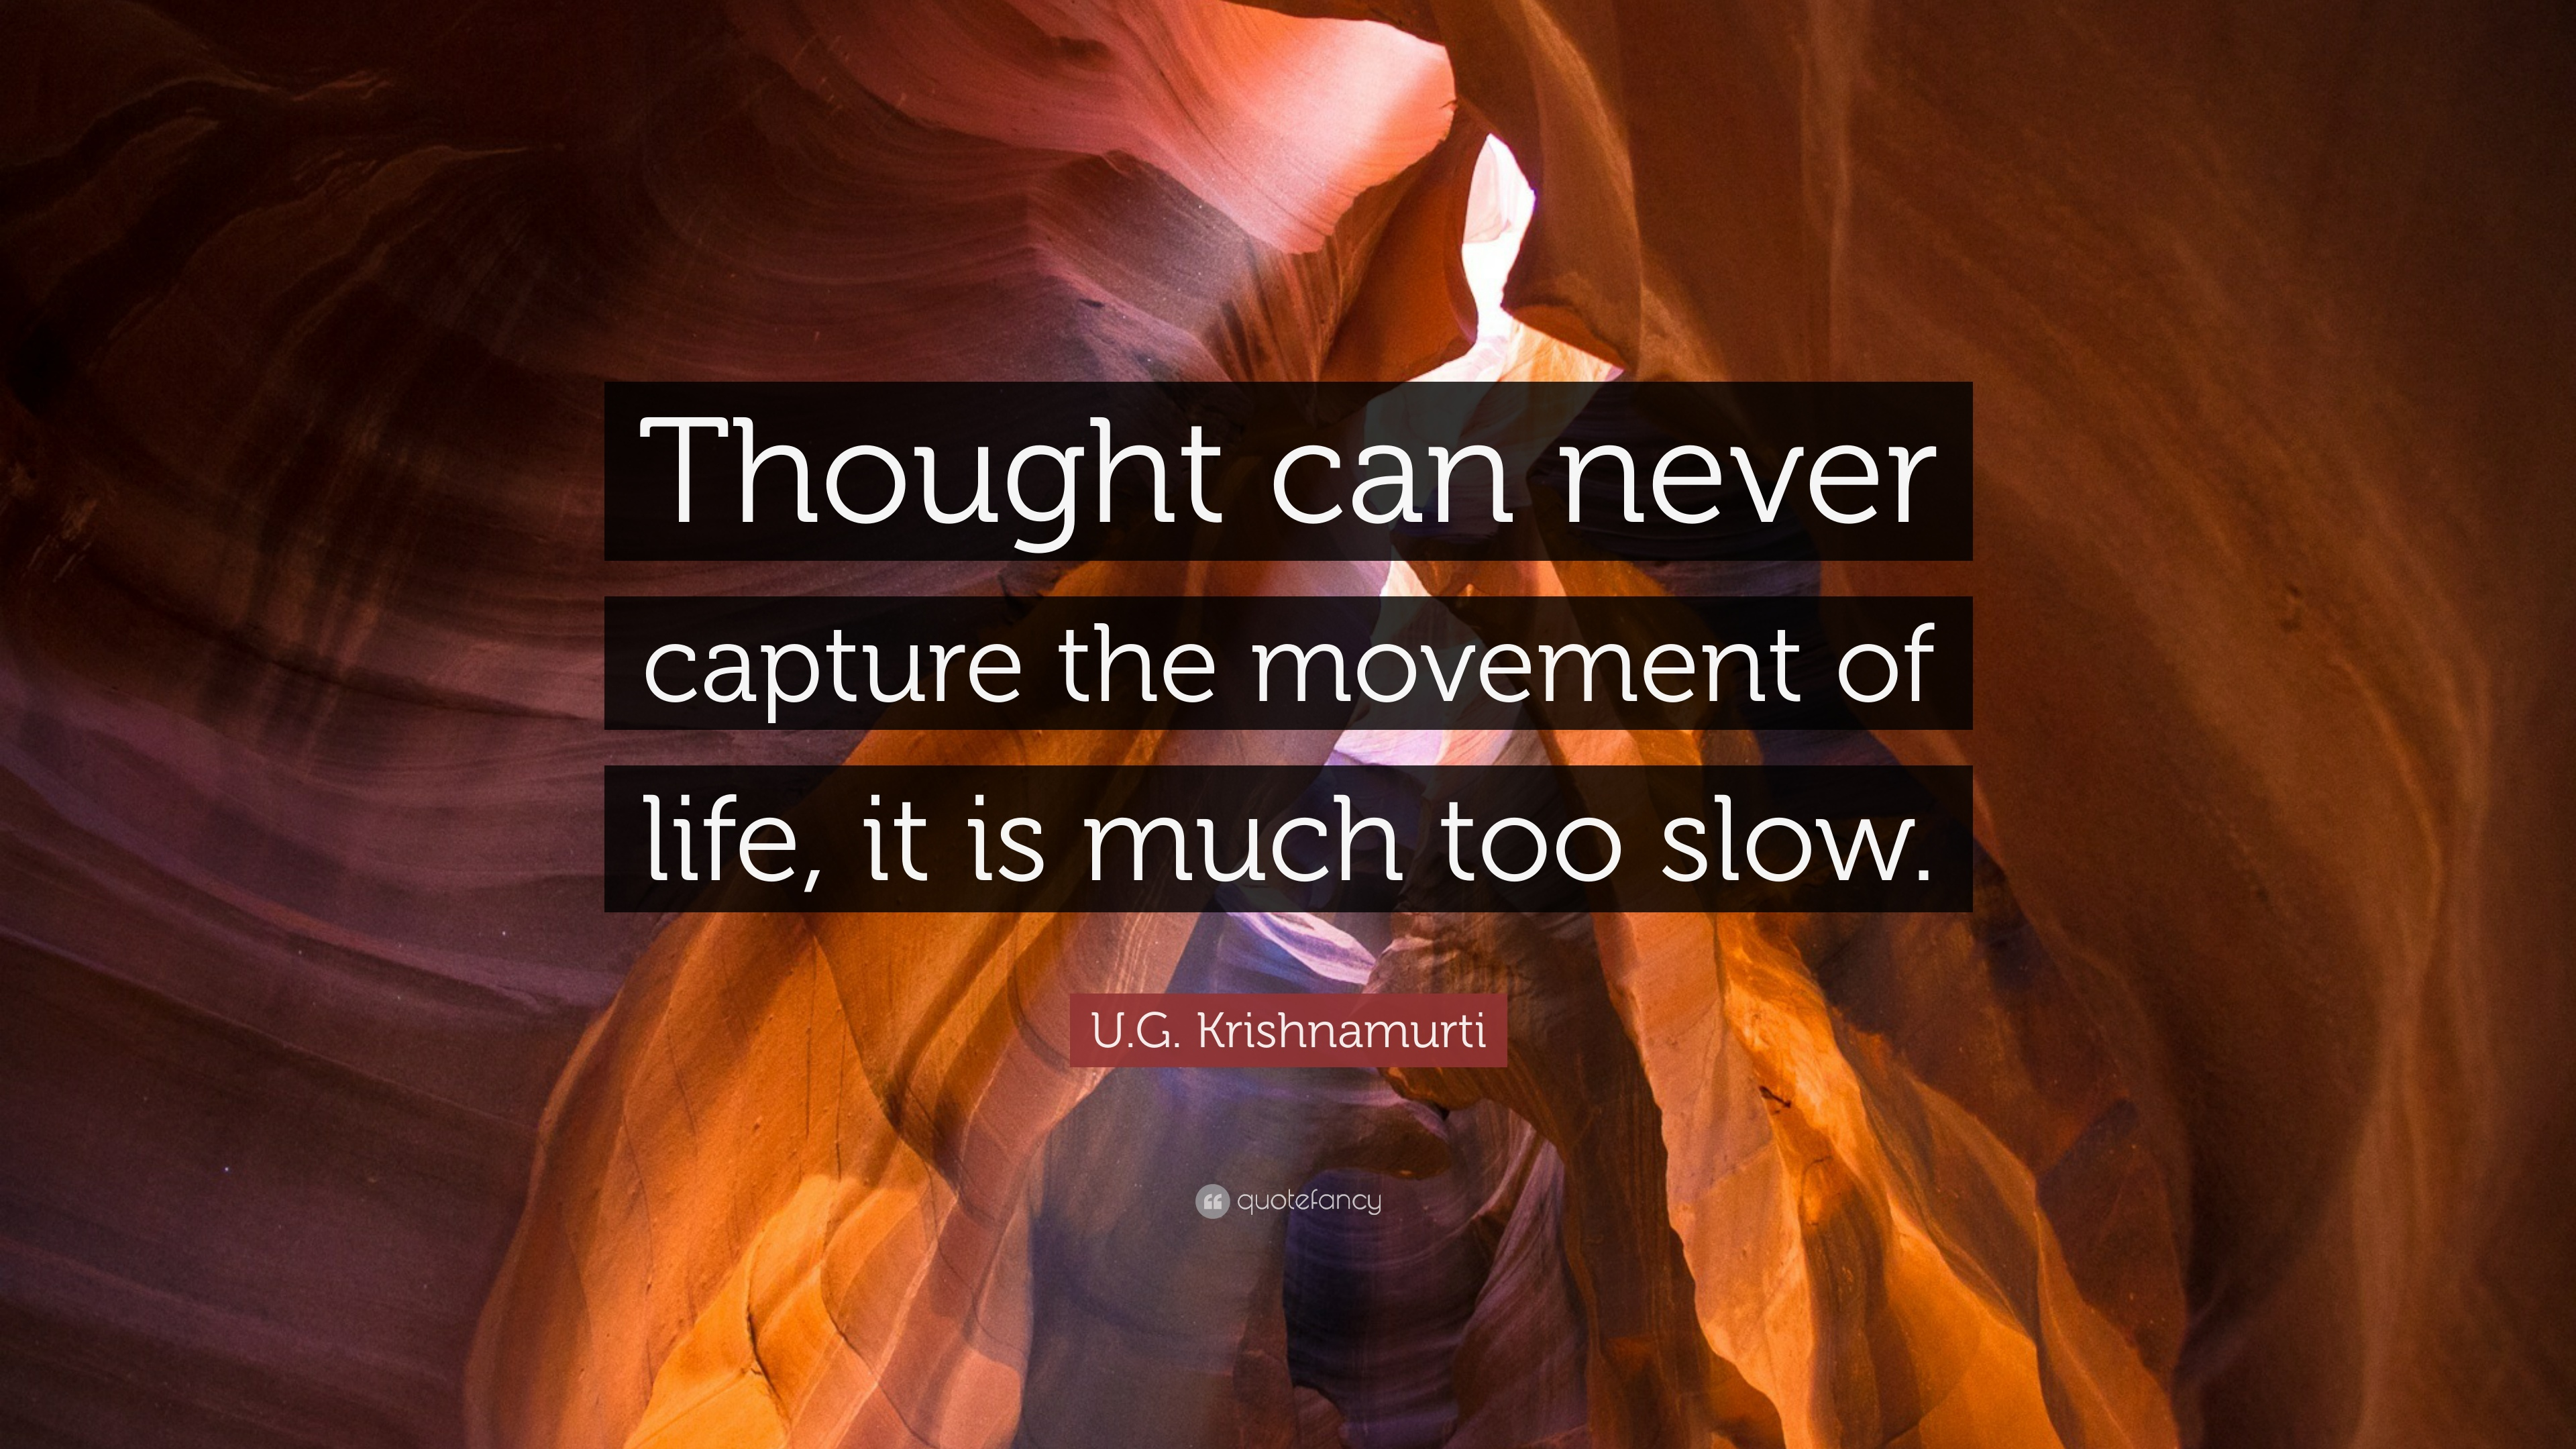 """Thought can never capture the movement of life, it is much too slow."" – U.G. Krishnamurti [3840 X 2160]"